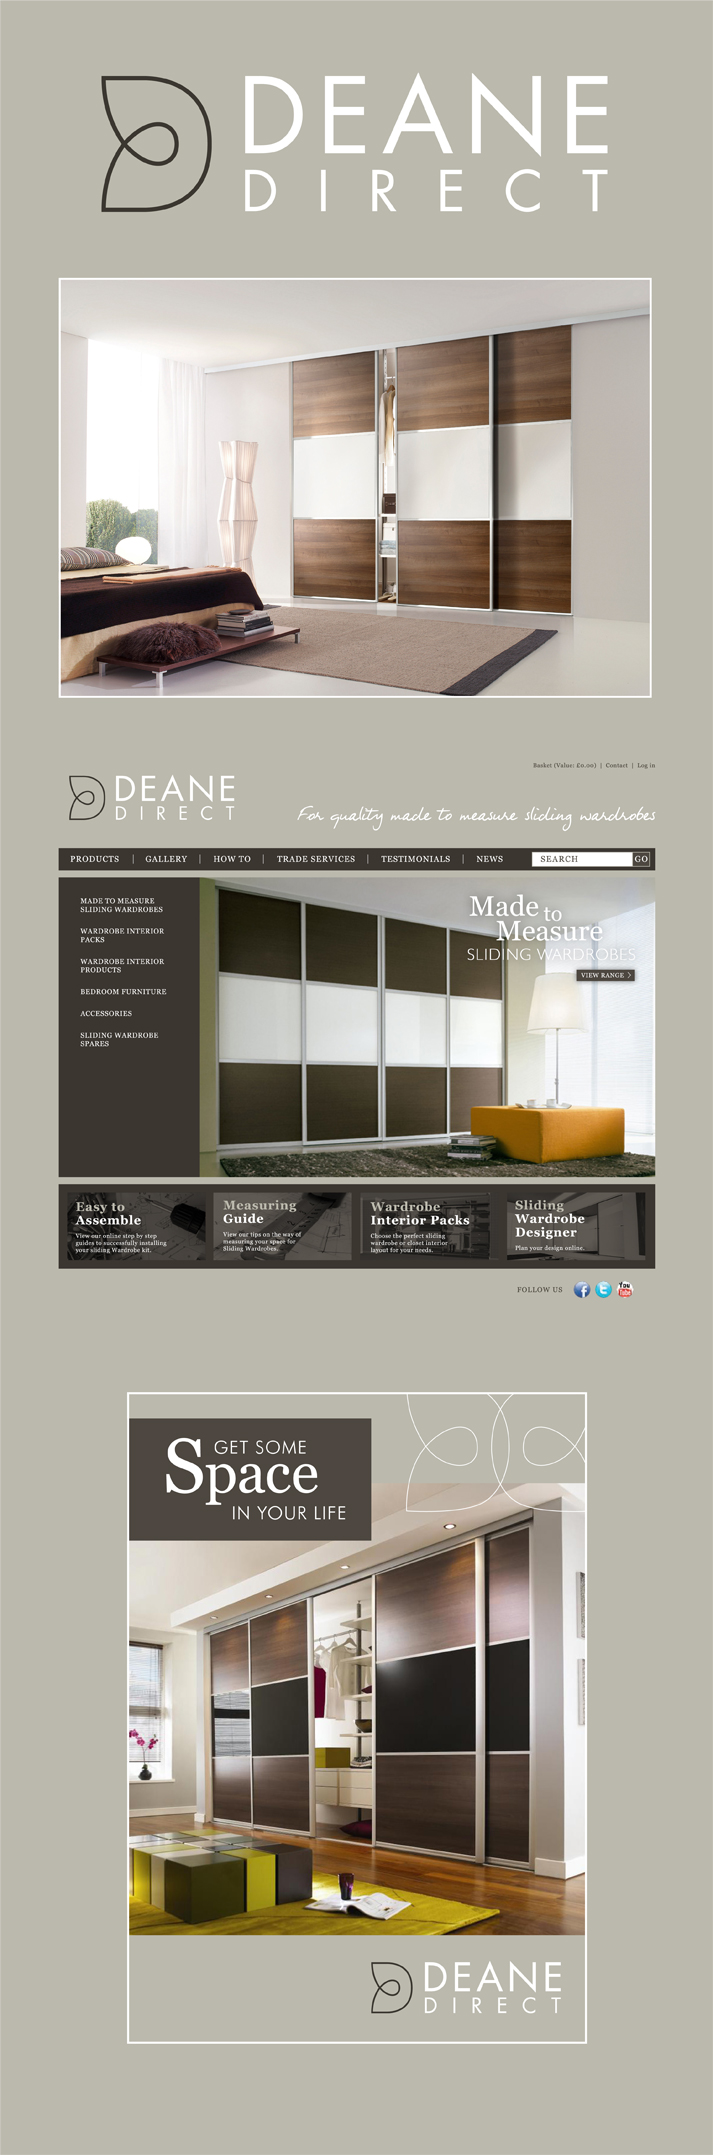 Deane Direct Branding Project